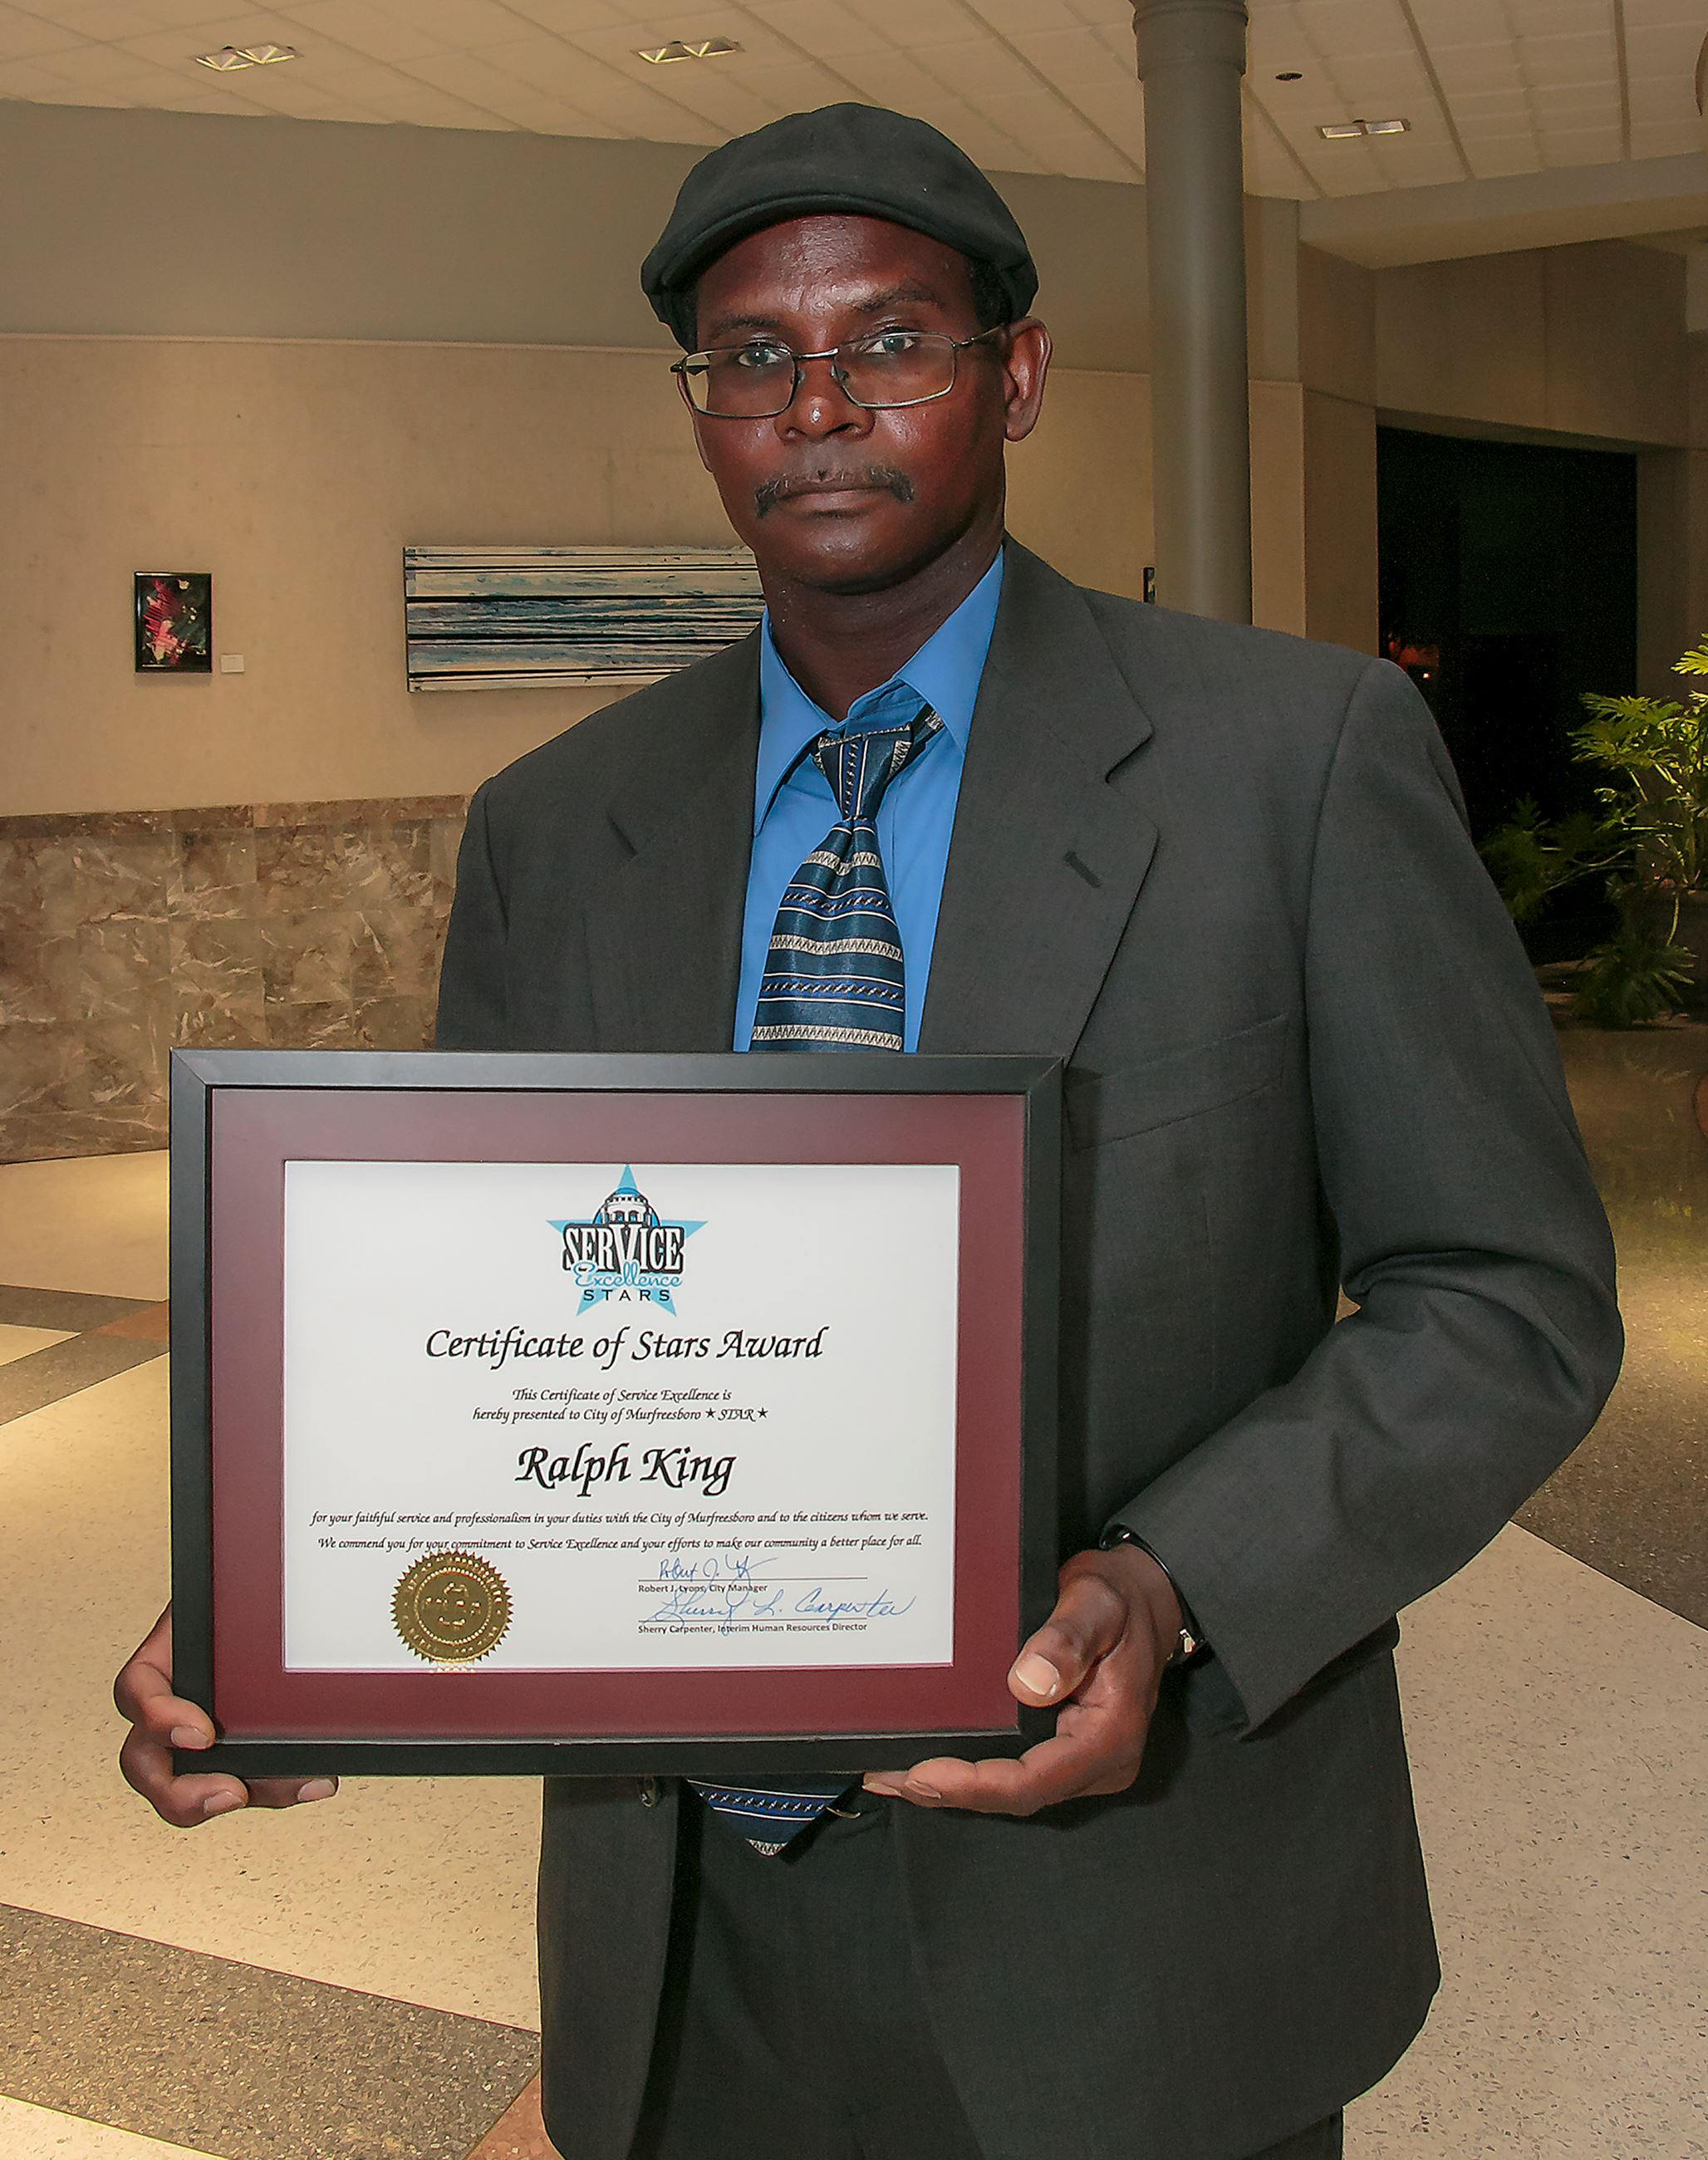 Photo of City Recognizes Solid Waste Employee Ralph King with STARS Award